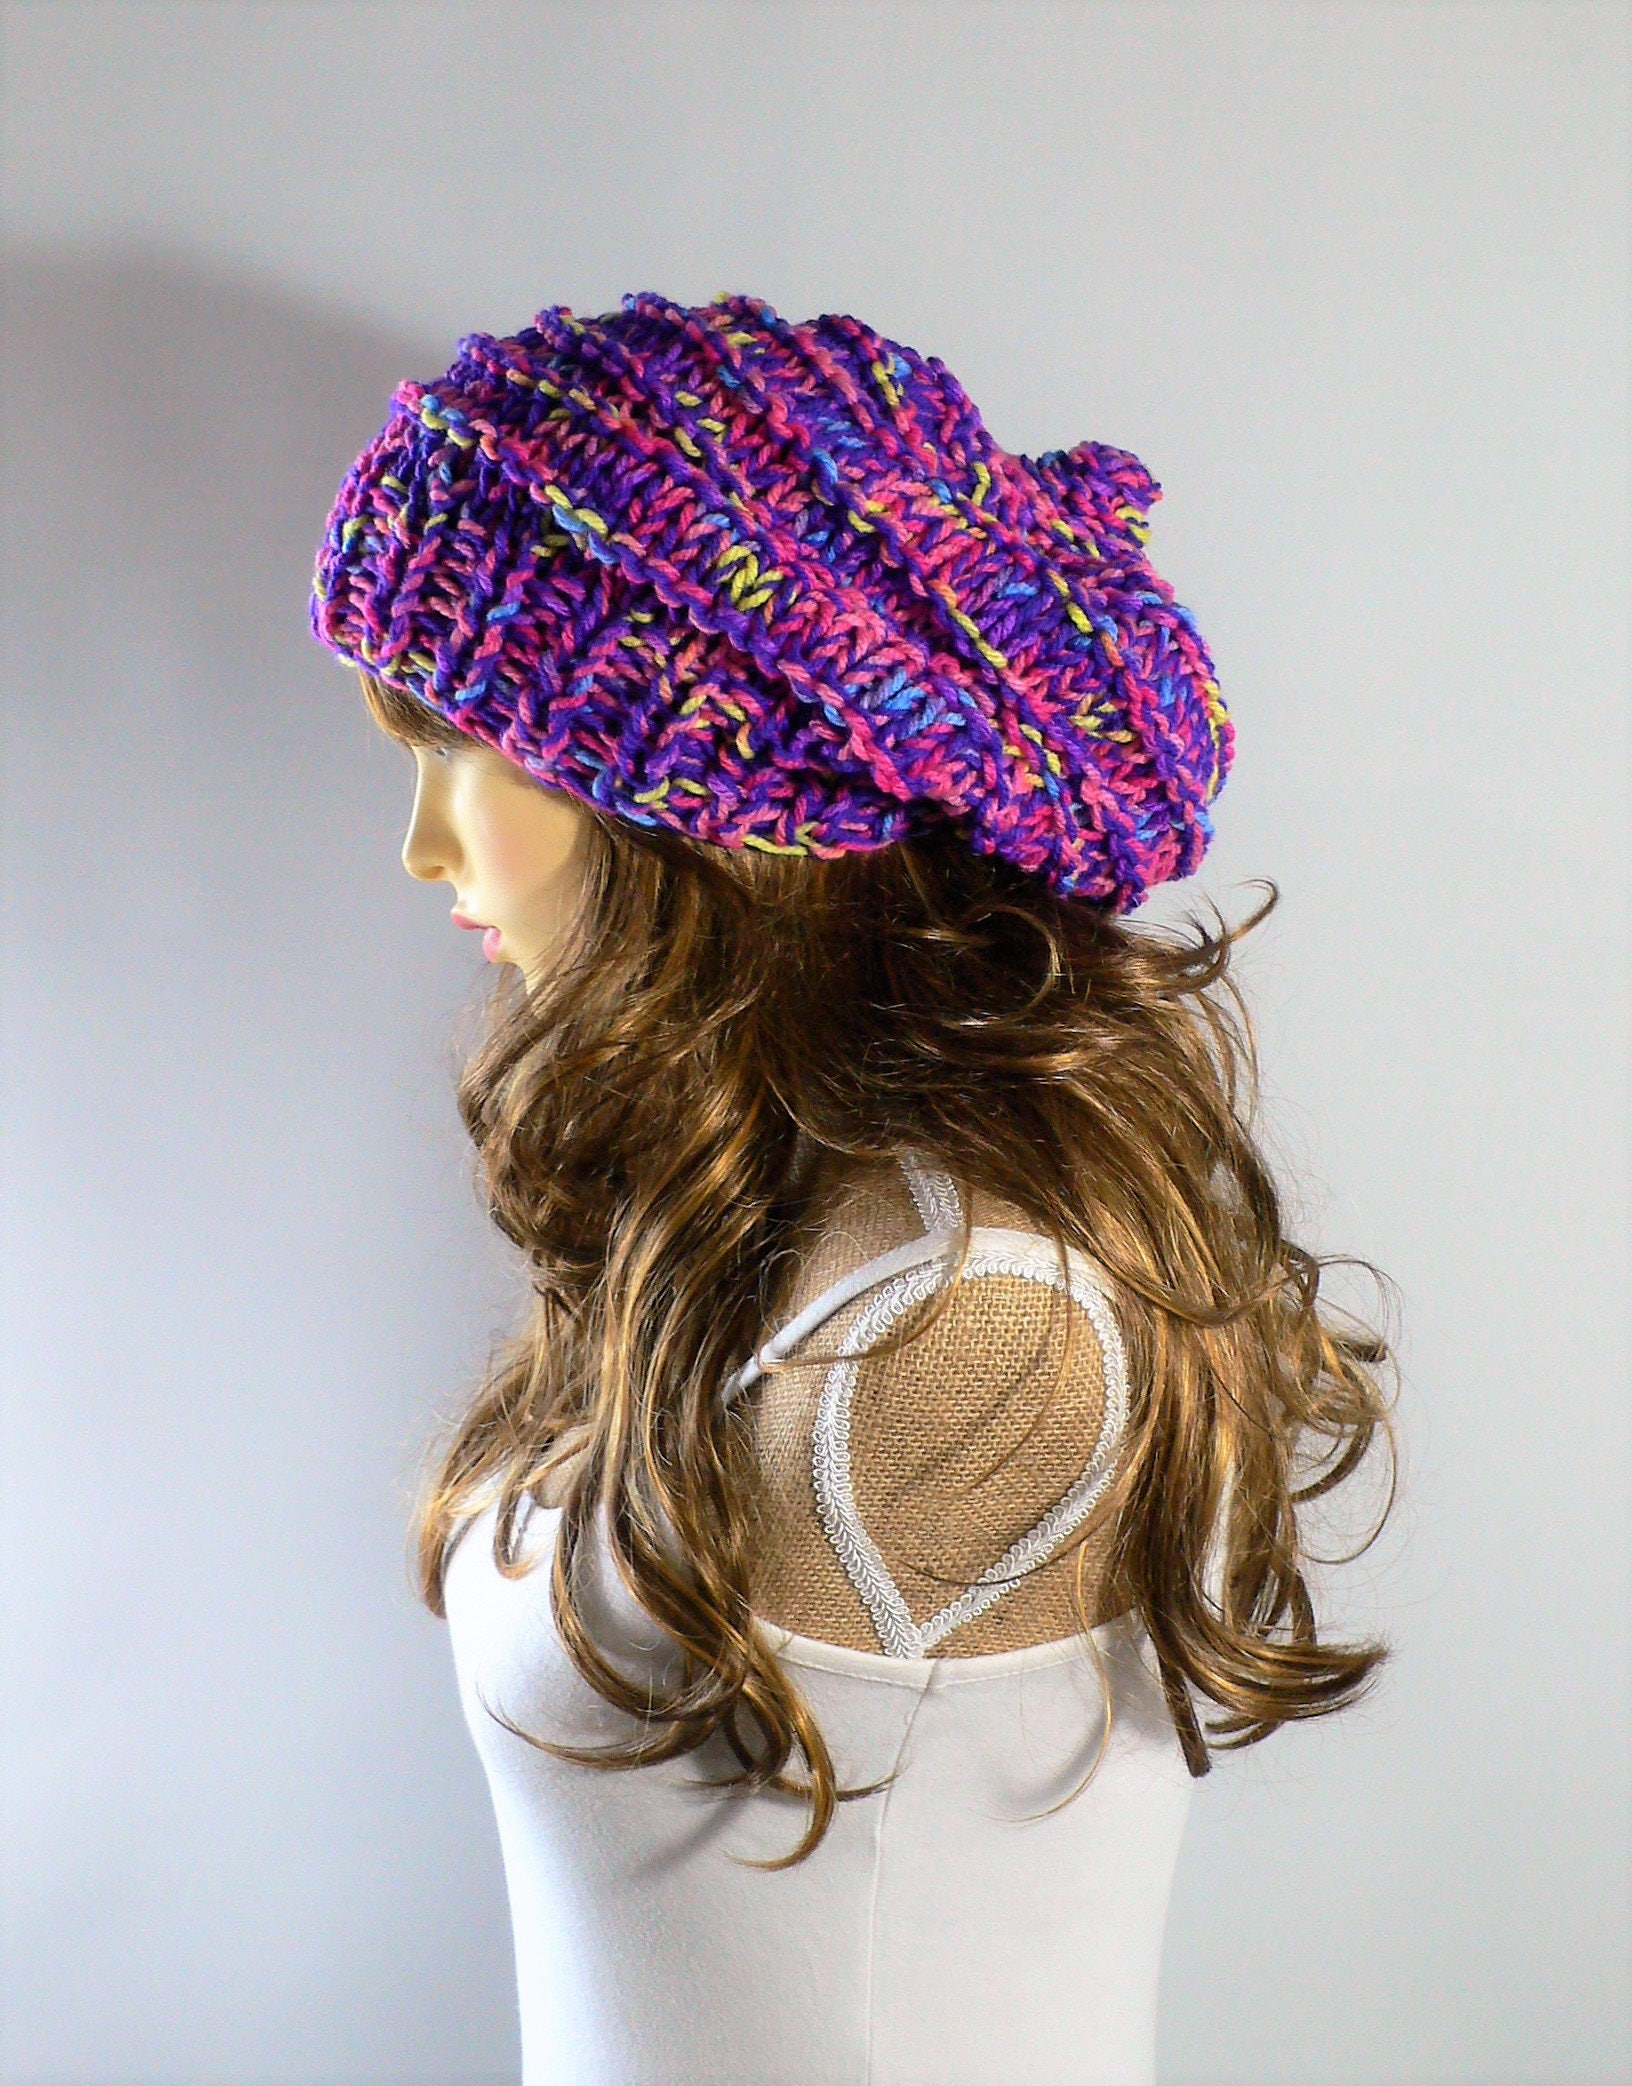 Rainbow Hat Festival Hat Burning Man Clothing Rainbow Pride Gay Pride Hat Pixie Hat Slouchy Knit Hat Slouch Beanie Knit Beanie